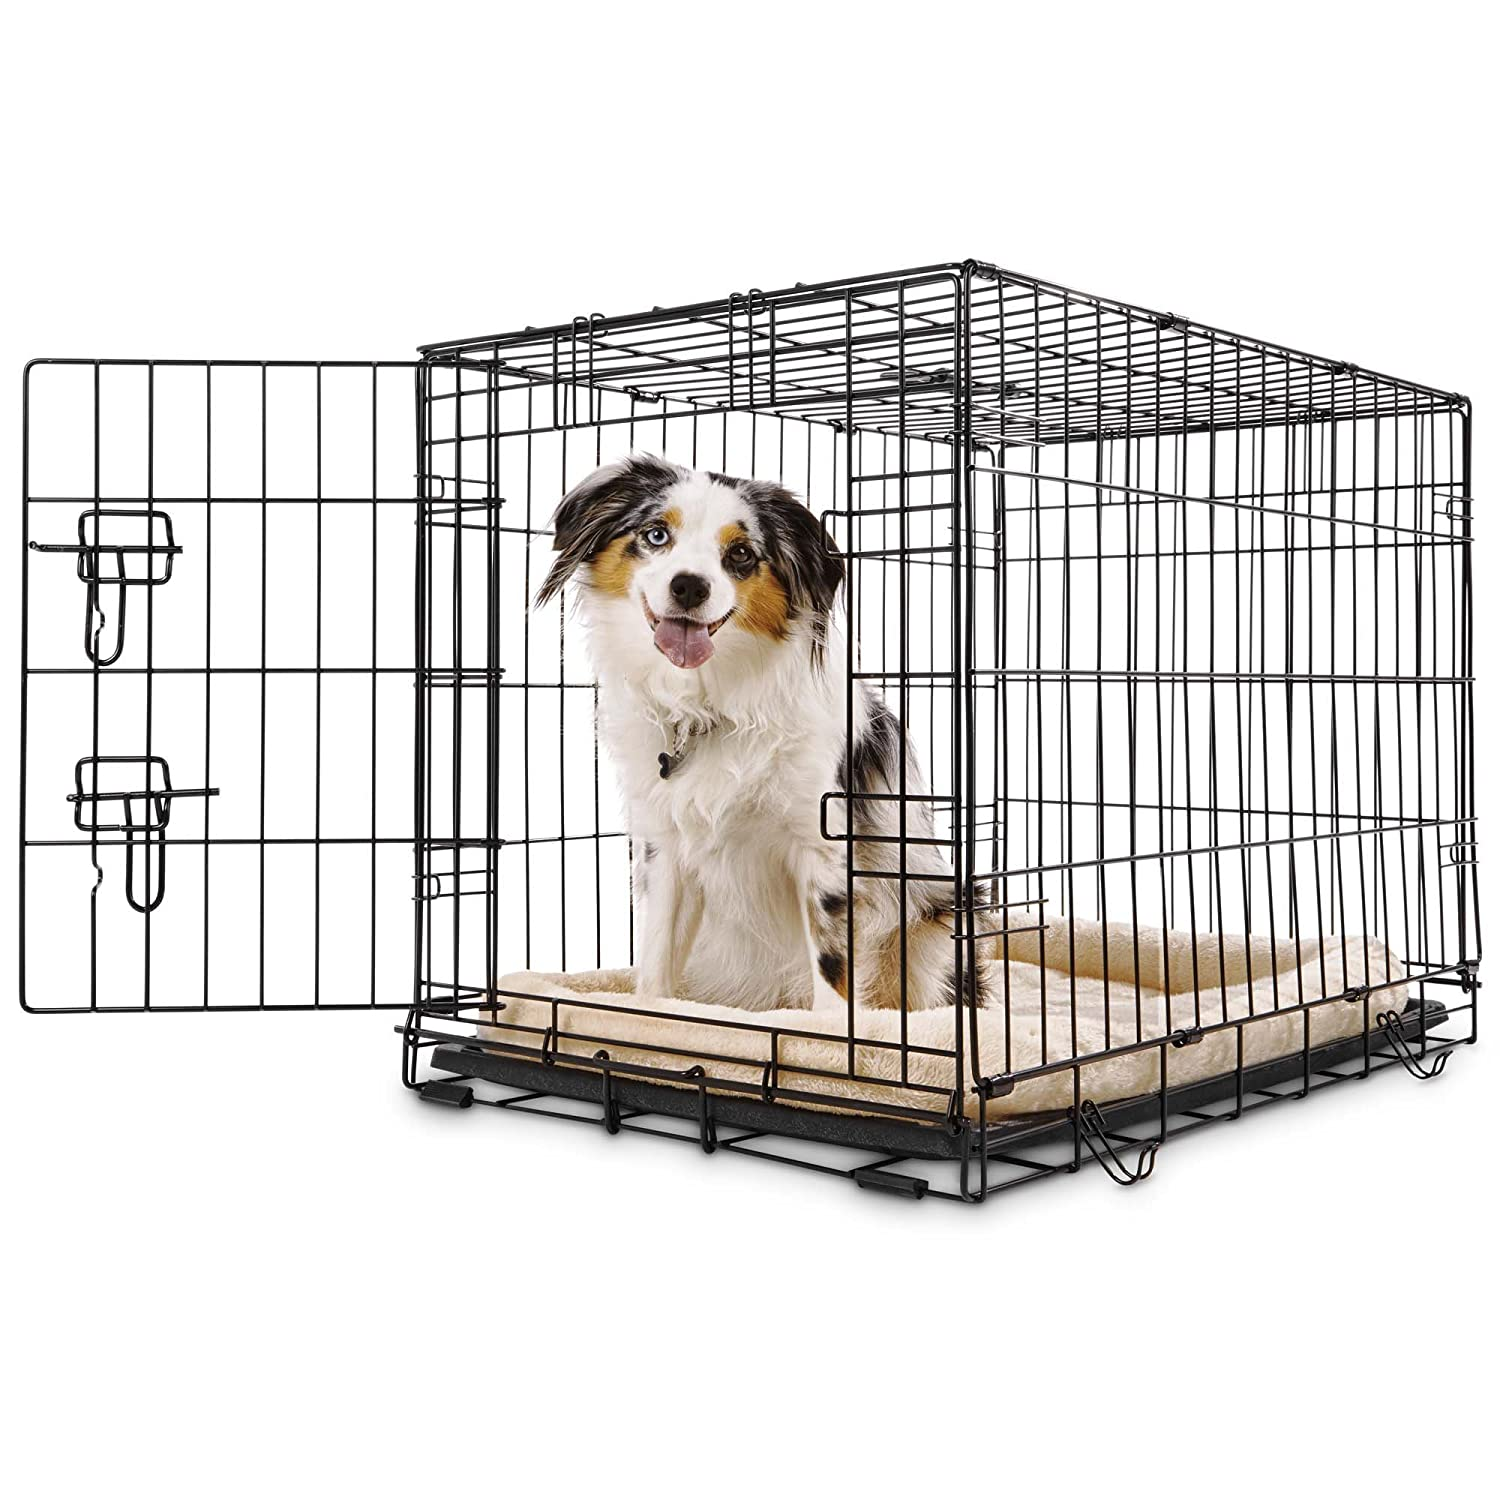 Amazon.com : Petco Classic 1-Door Dog Crate, 30\